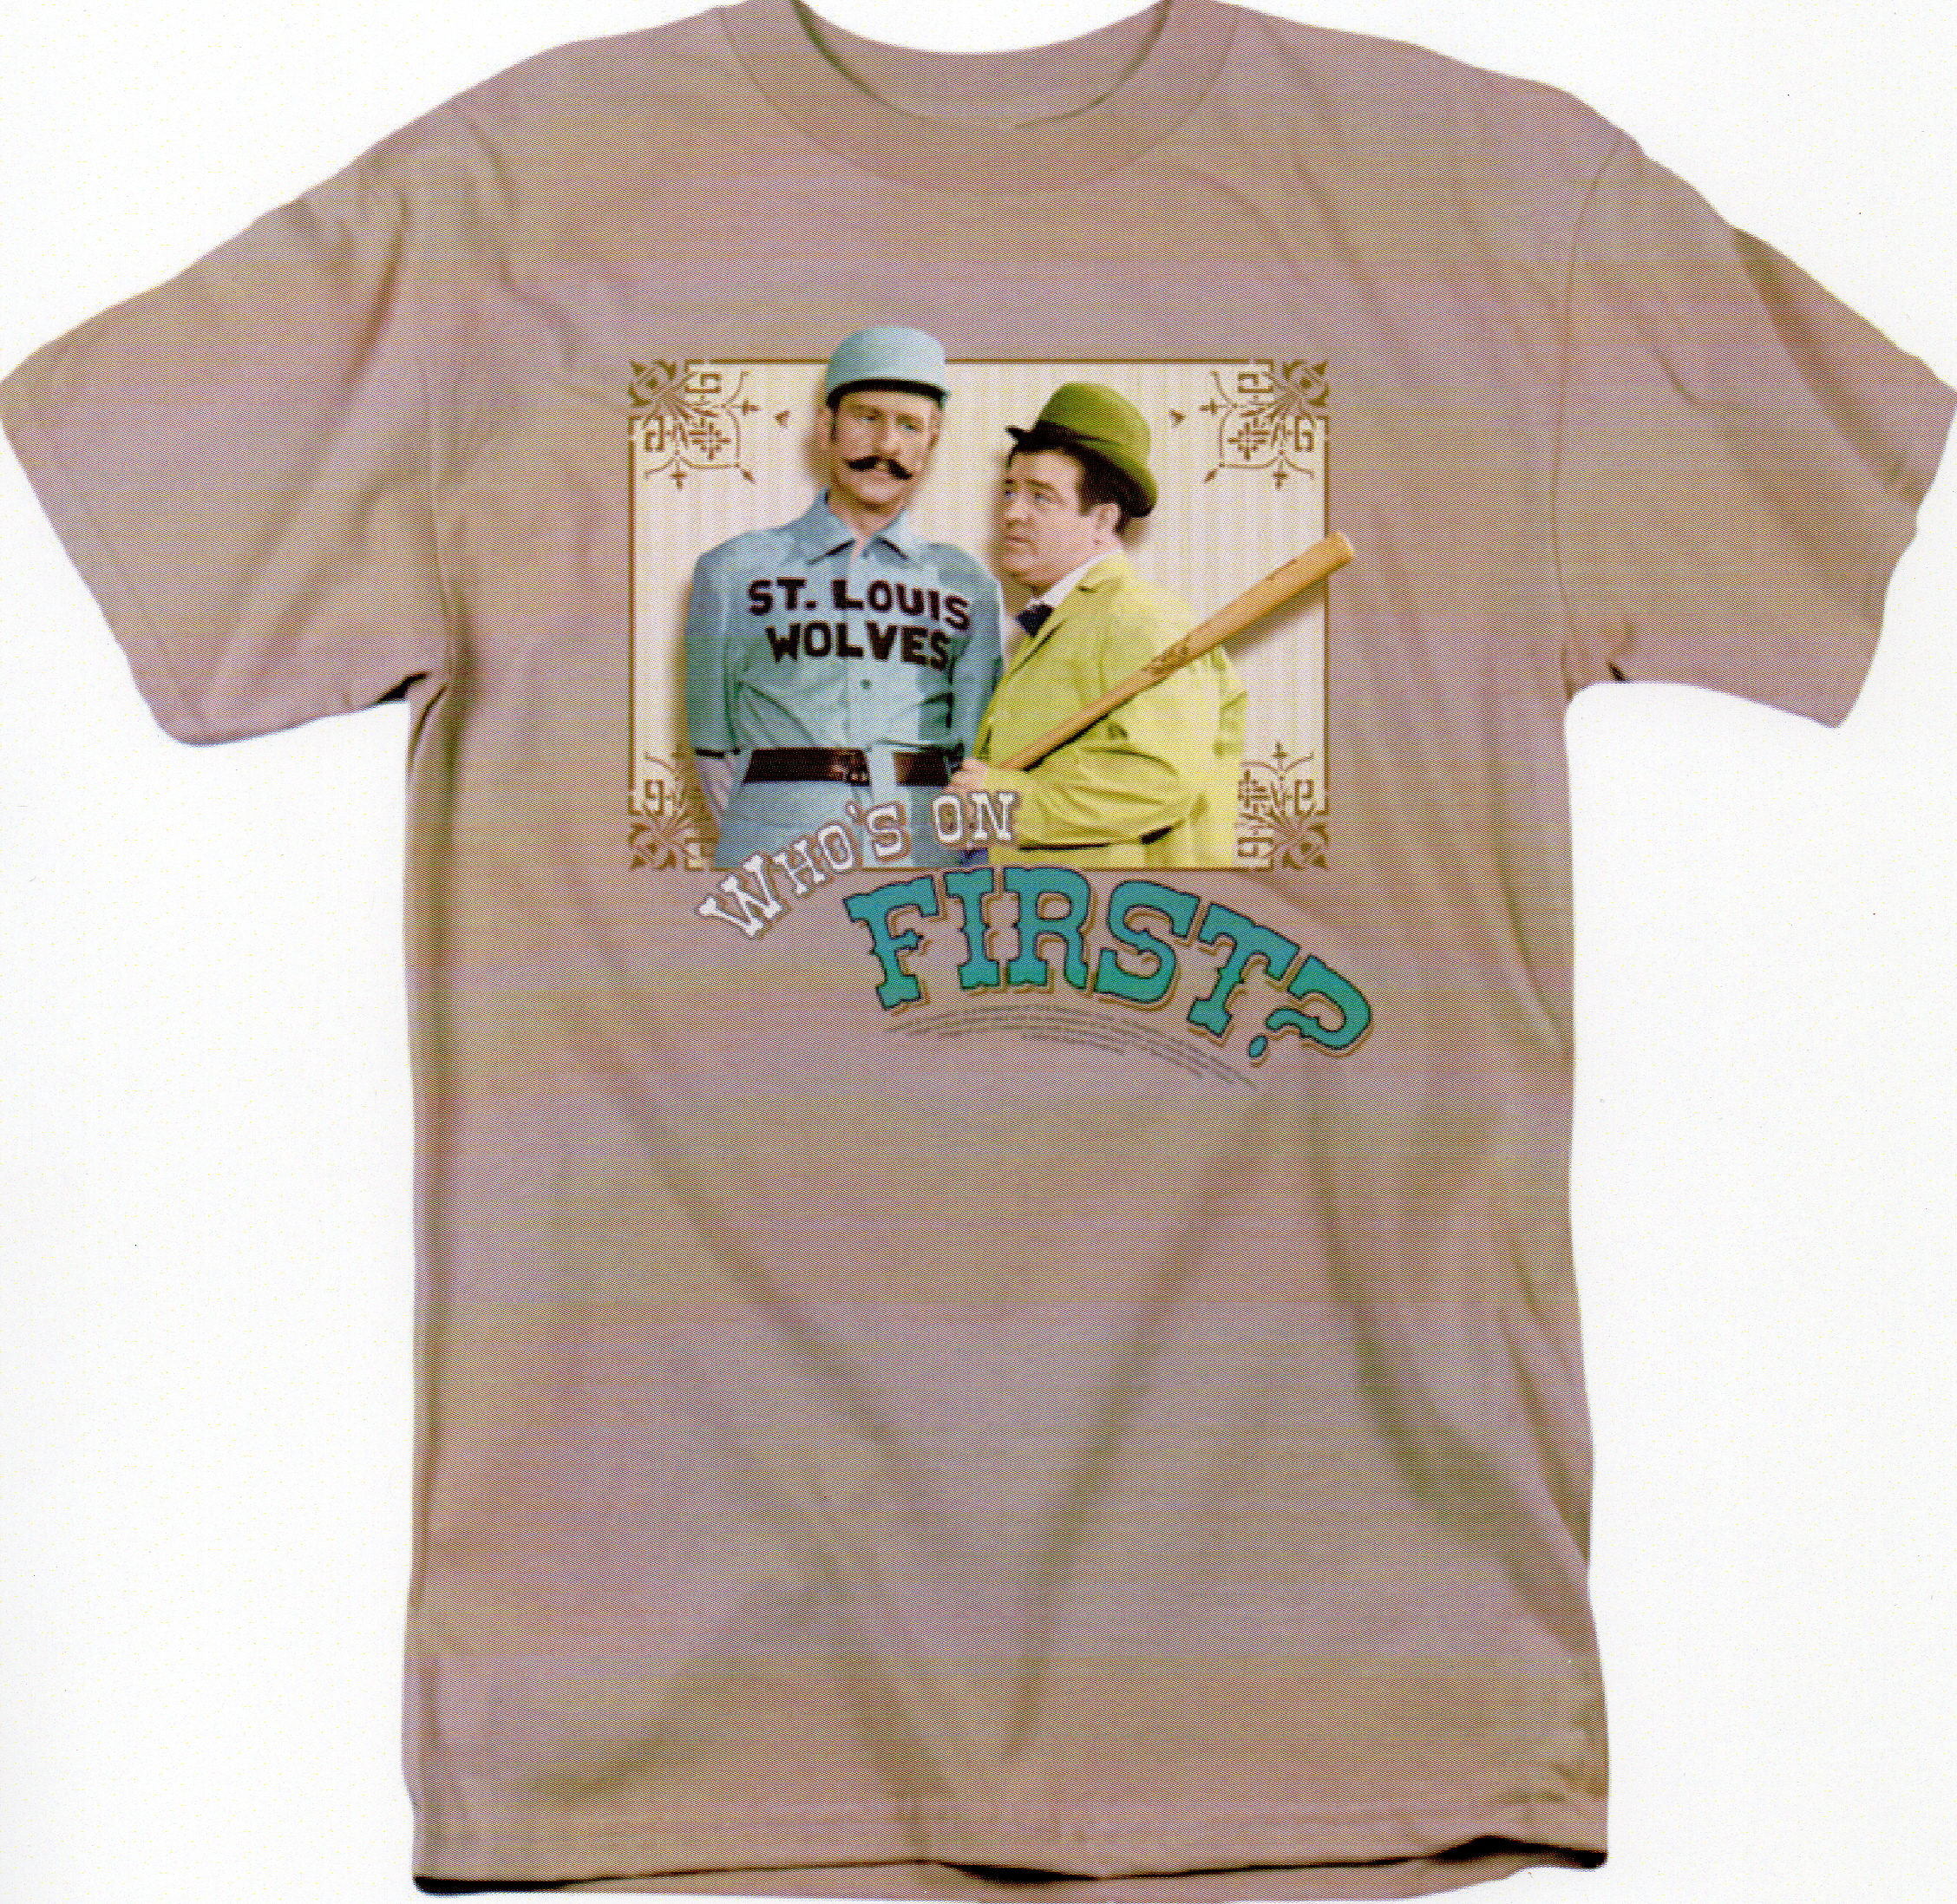 Who's On First? Short Sleeve Tee